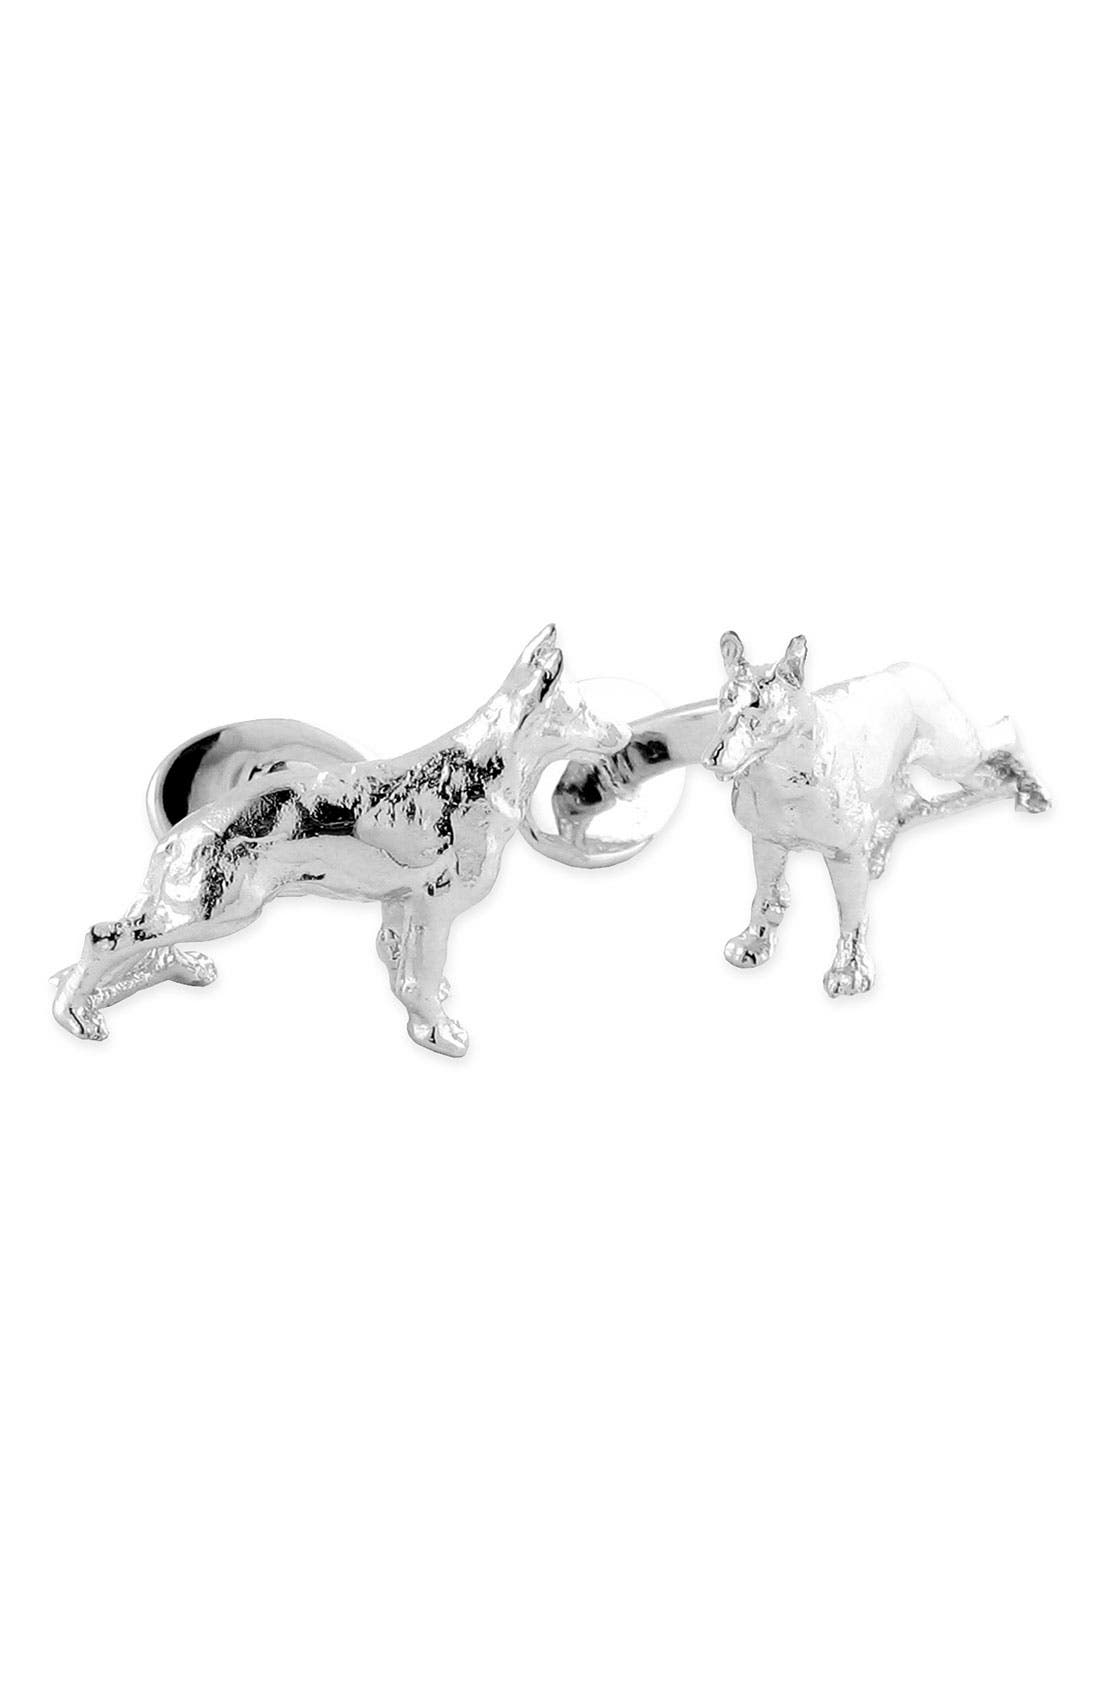 'German Shepherd' Sterling Silver Cuff Links,                         Main,                         color, Silver